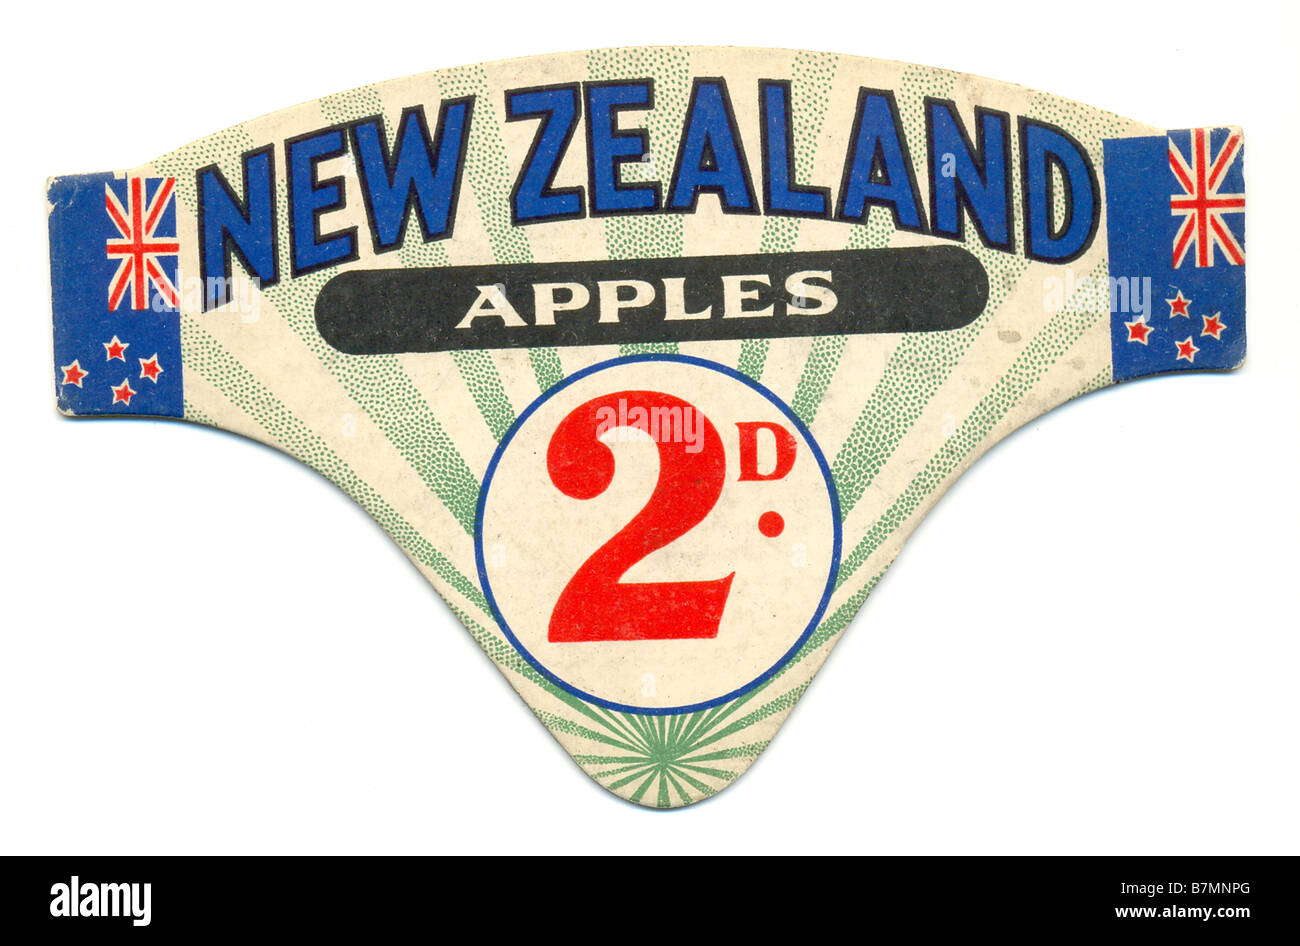 Shop price card for New Zealand apples circa 1930 - Stock Image